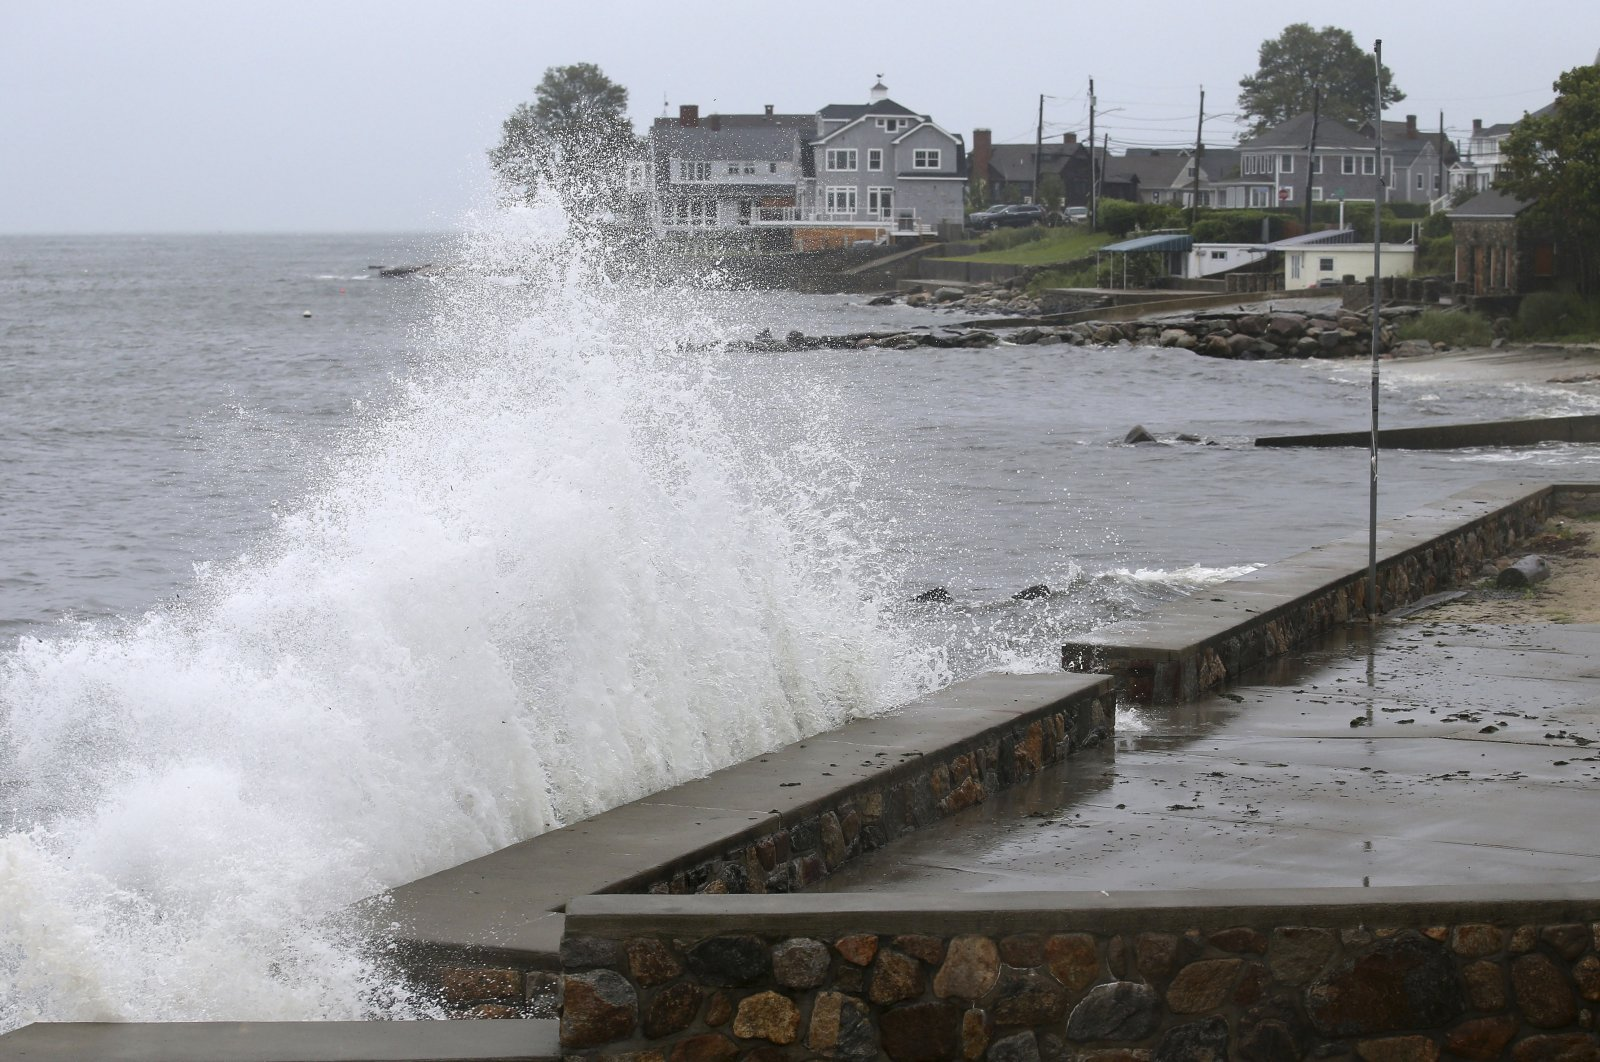 Waves crash against the sea wall along Pequot Avenue in New London, Conn. U.S., as Tropical Storm Henri approaches, Aug. 22, 2021. (AP Photo)